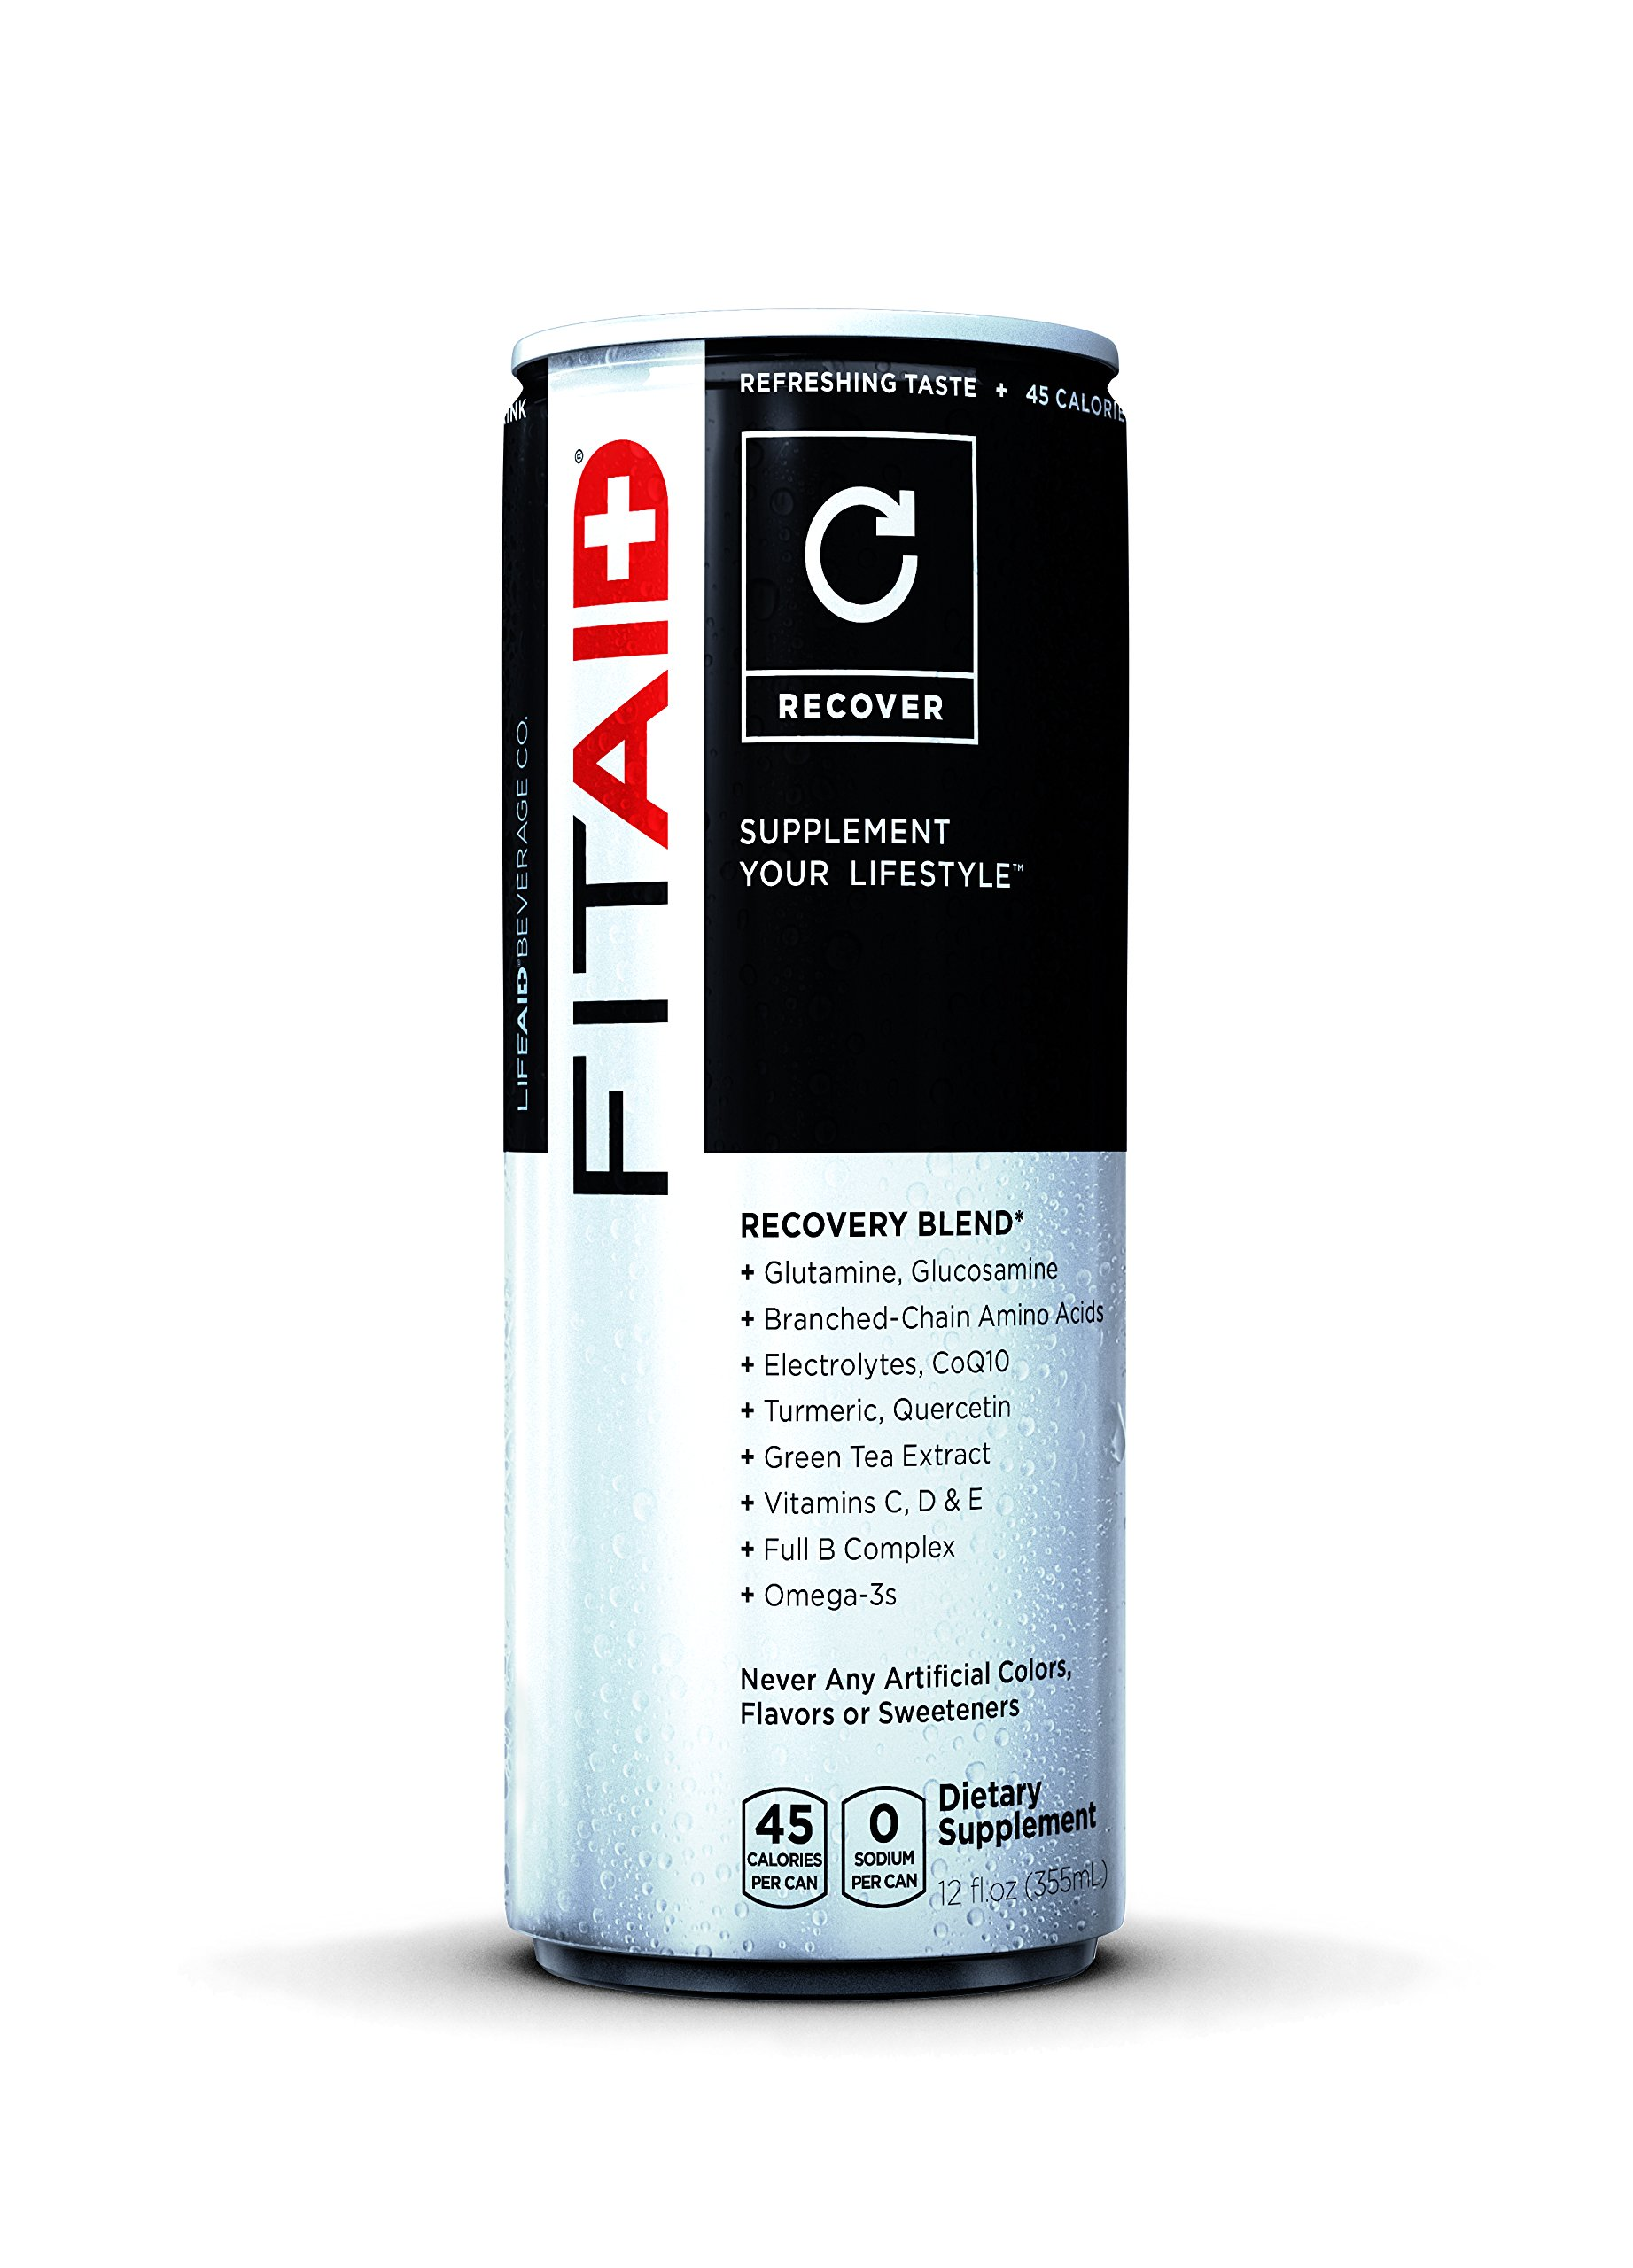 FITAID Recovery Blend, 12 Ounce Can (Pack of 12) | 100% Clean & Paleo Friendly | No Artificial Colors, Flavors Or Sweeteners | BCAAs, L-Glutamine, L-Arginine, Omega 3s